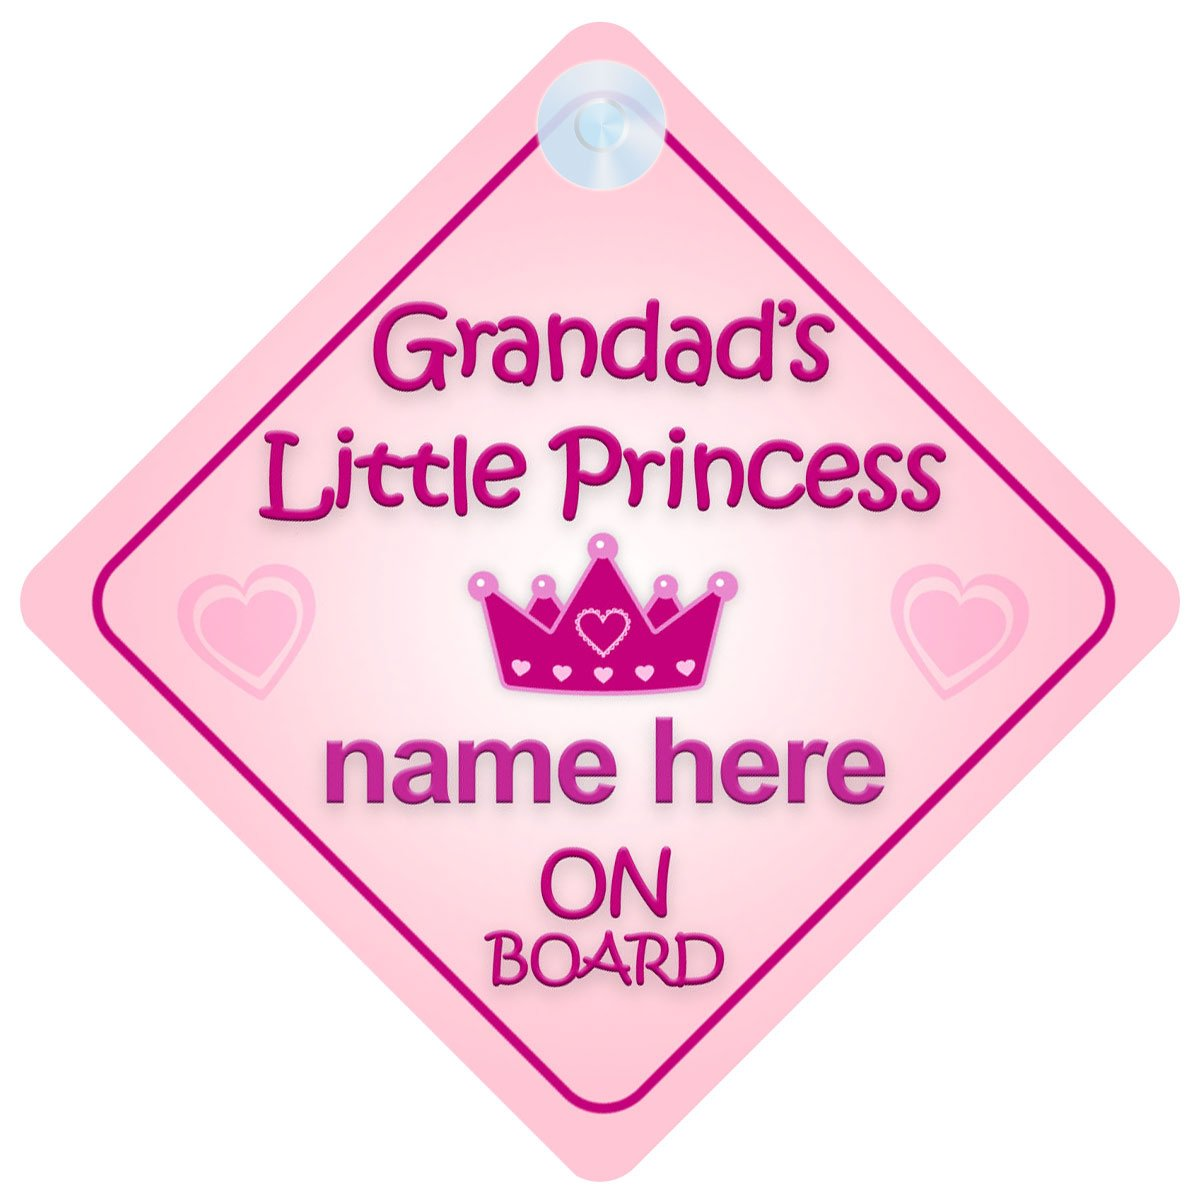 Grandad's Little Princess On Board Car Sign New Baby / Child Gift / Present